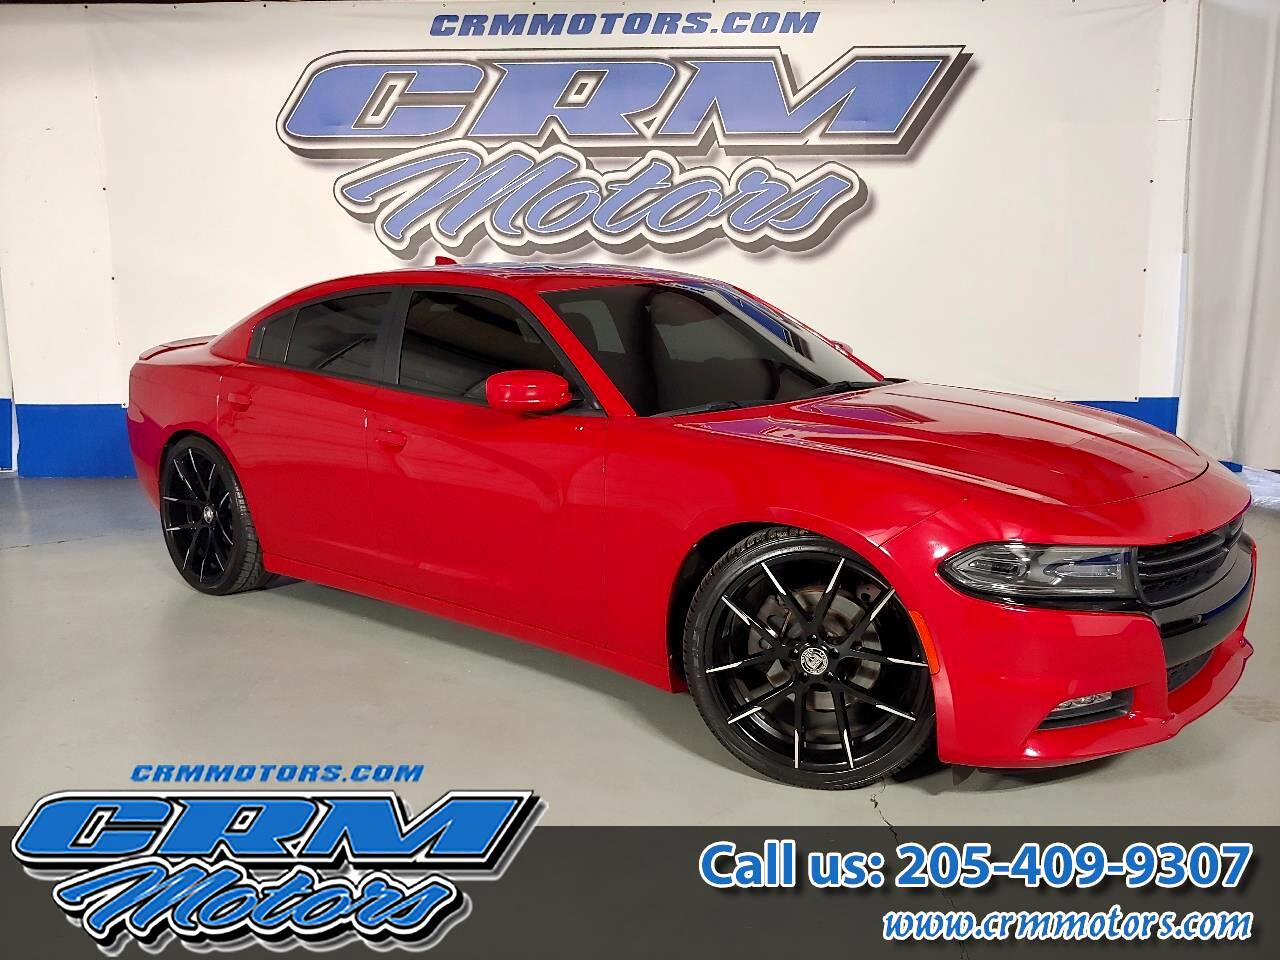 2015 Dodge Charger 4DR ROAD/TRACK WITH LAUNCH MODE! 22IN WHEELS!